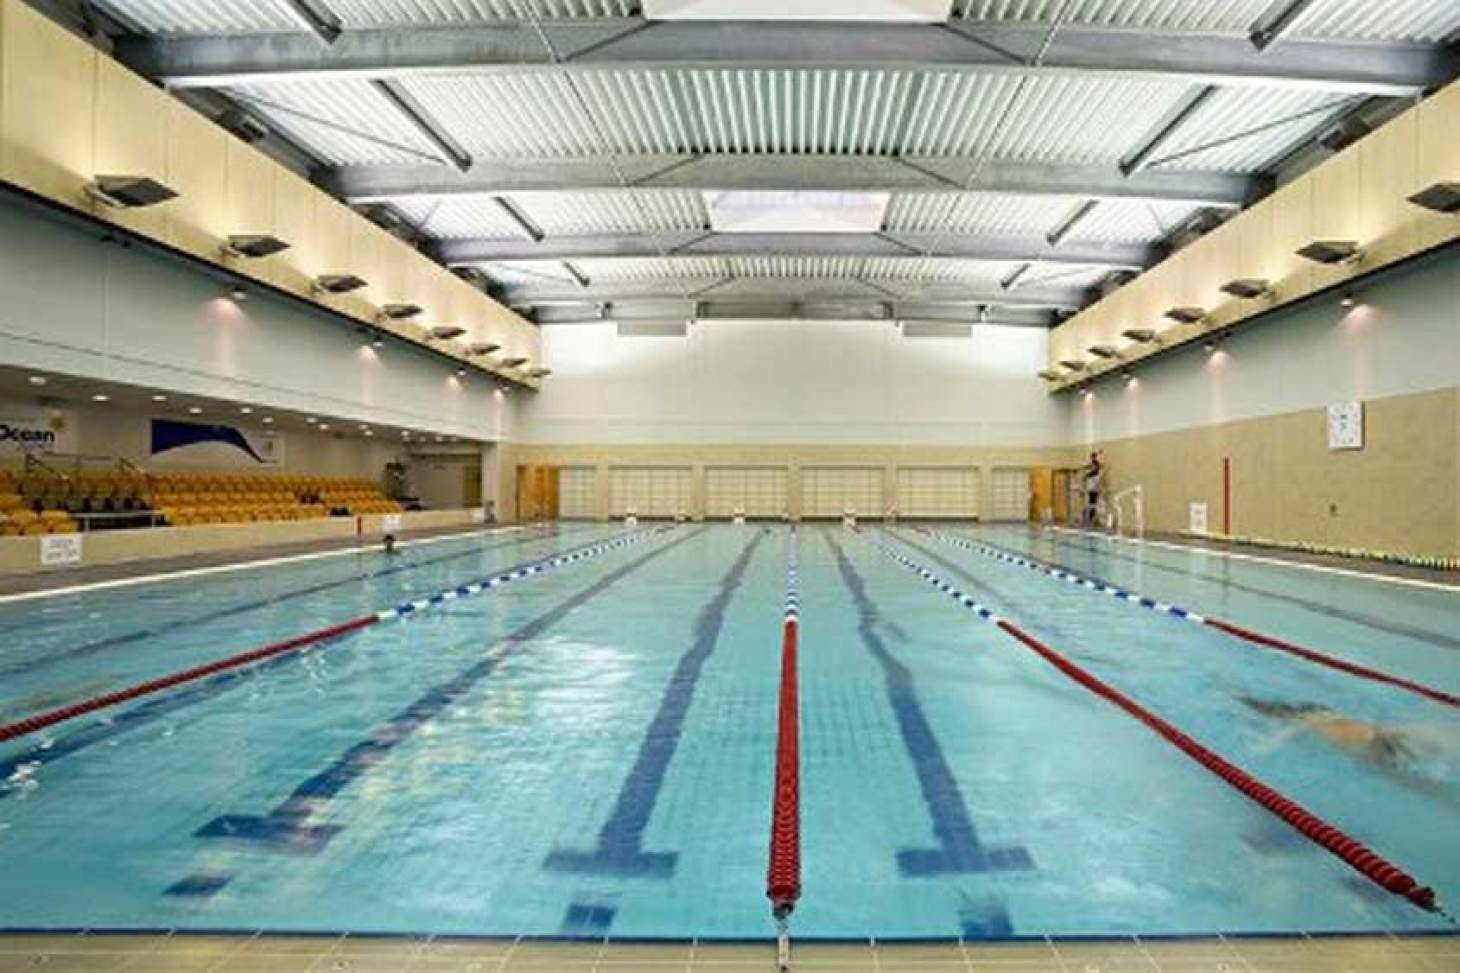 Mile End Park Leisure Centre and Stadium Indoor swimming pool